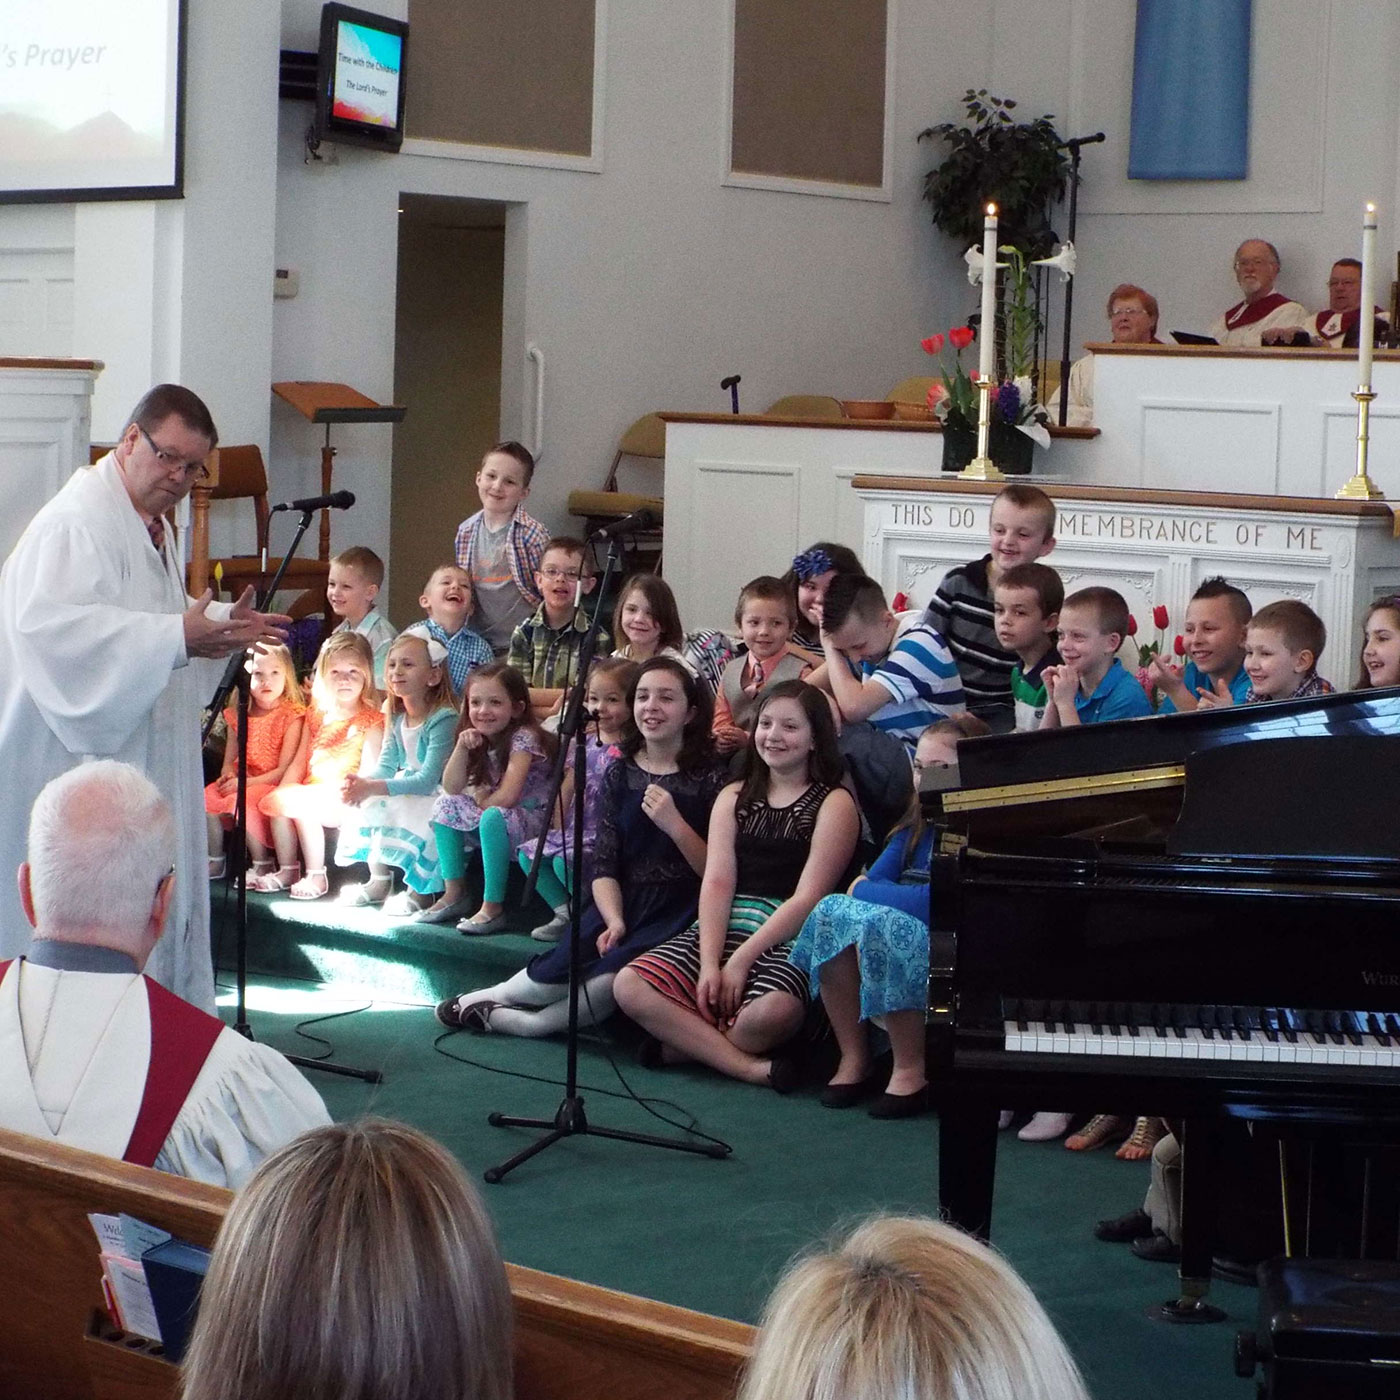 Pastor Lance giving a children's sermon